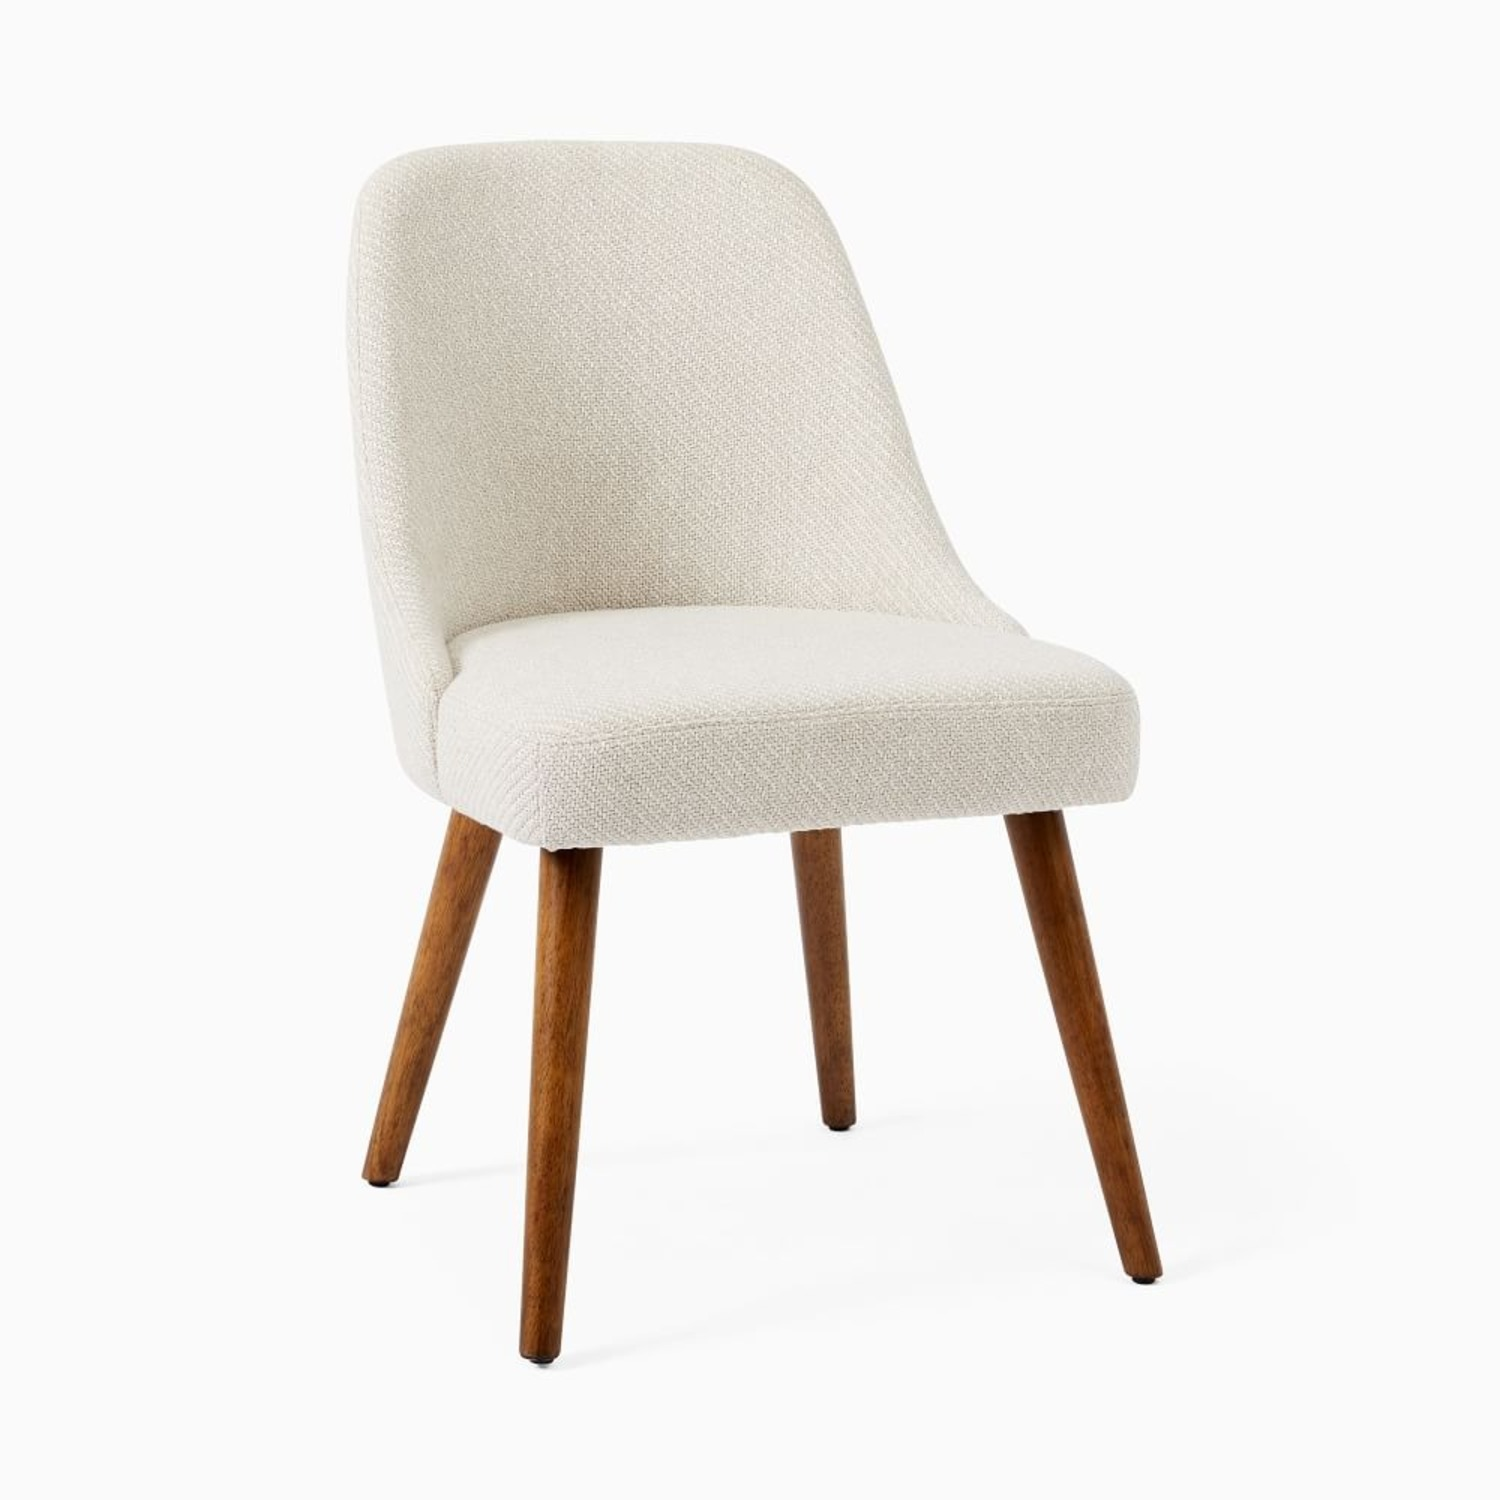 West Elm Mid Century Upholstered Dining Chair - image-3